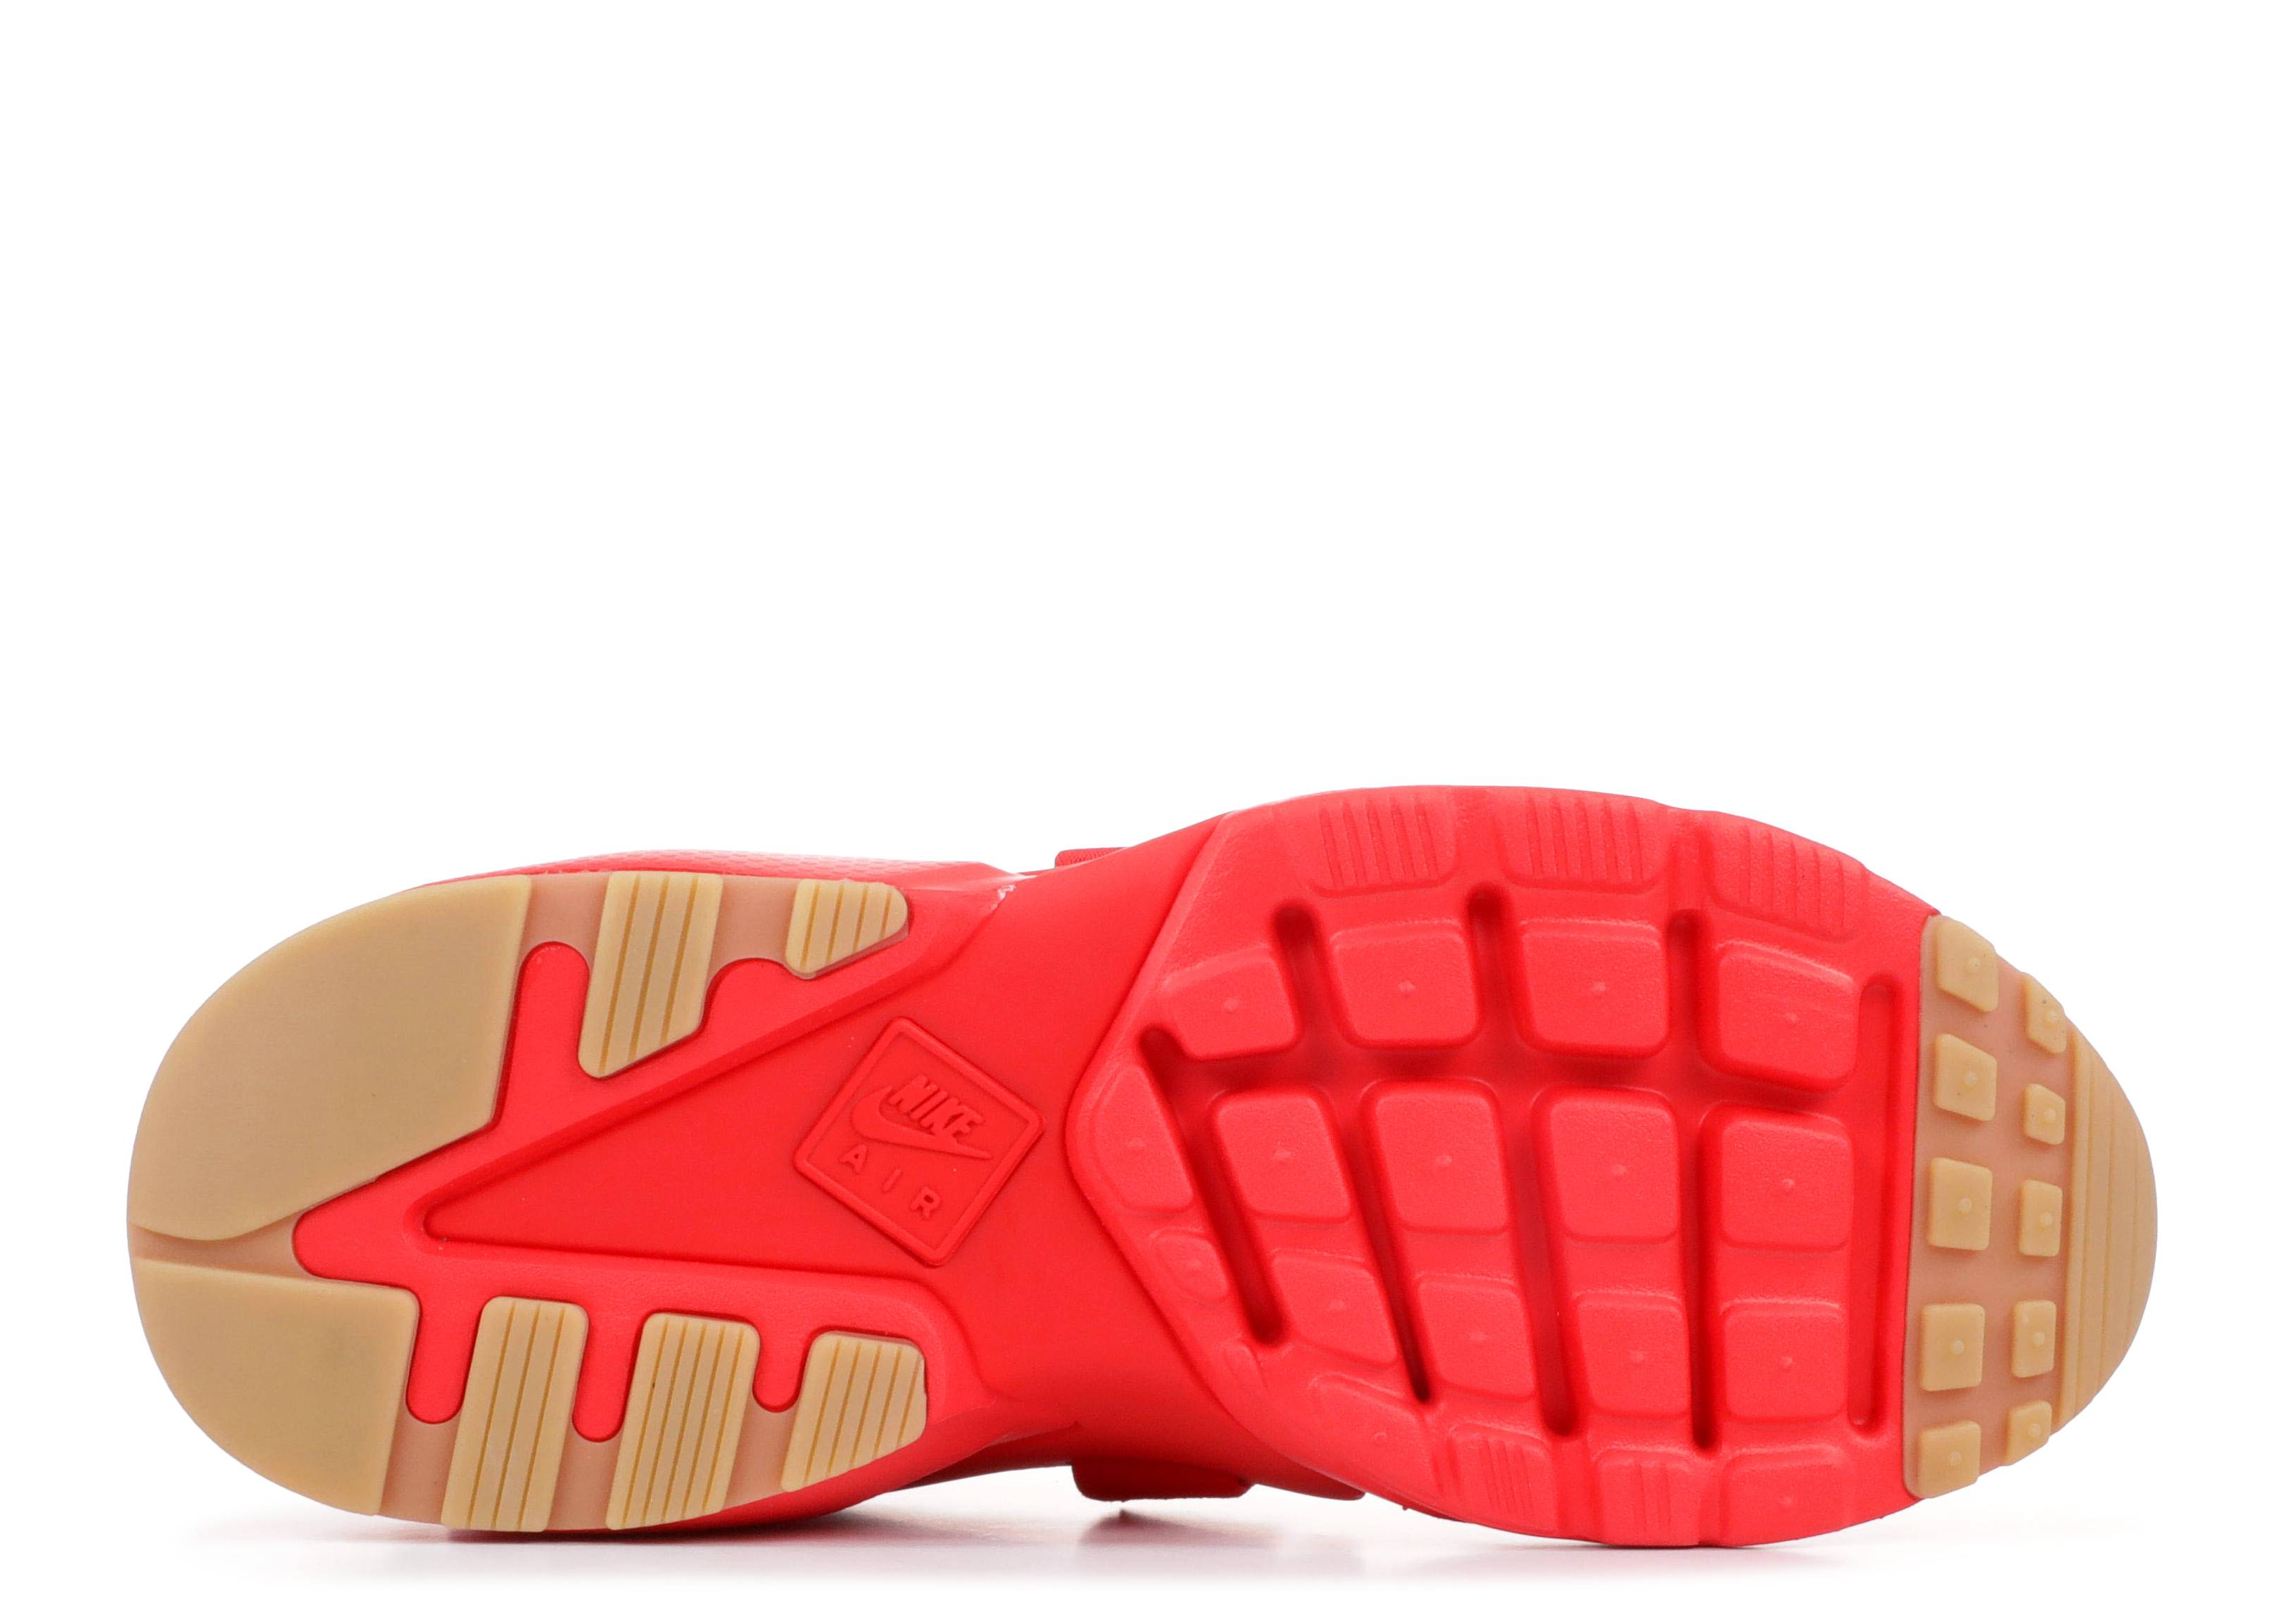 c1ebceef011ca W NIKE AIR HUARACHE CITY - Nike - AH6787 600 - speed red speed red-black